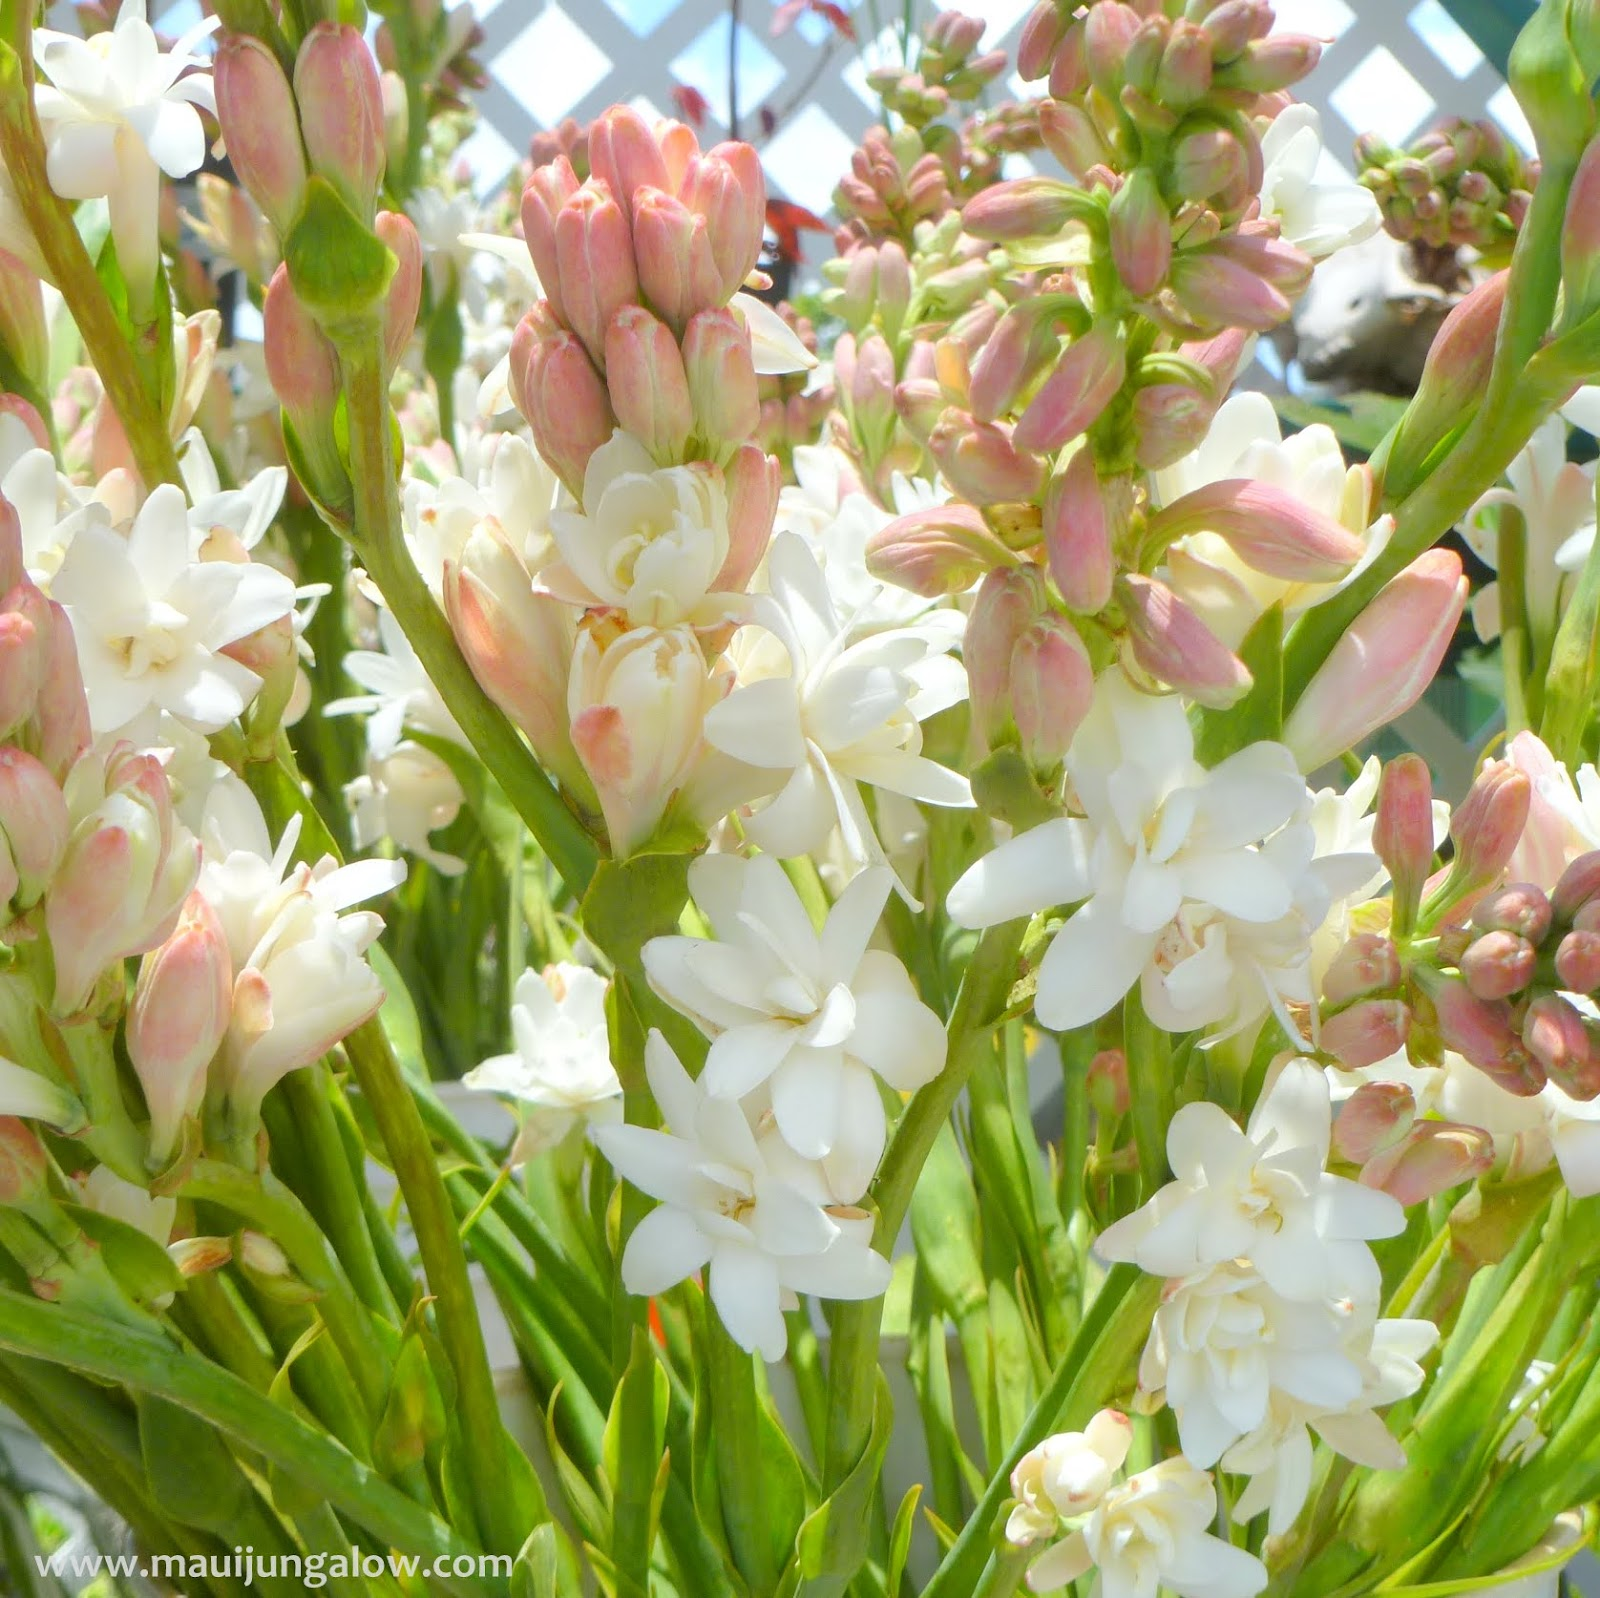 Maui jungalow f is for flowers fragrant tuberose or pikake in hawaiian izmirmasajfo Gallery